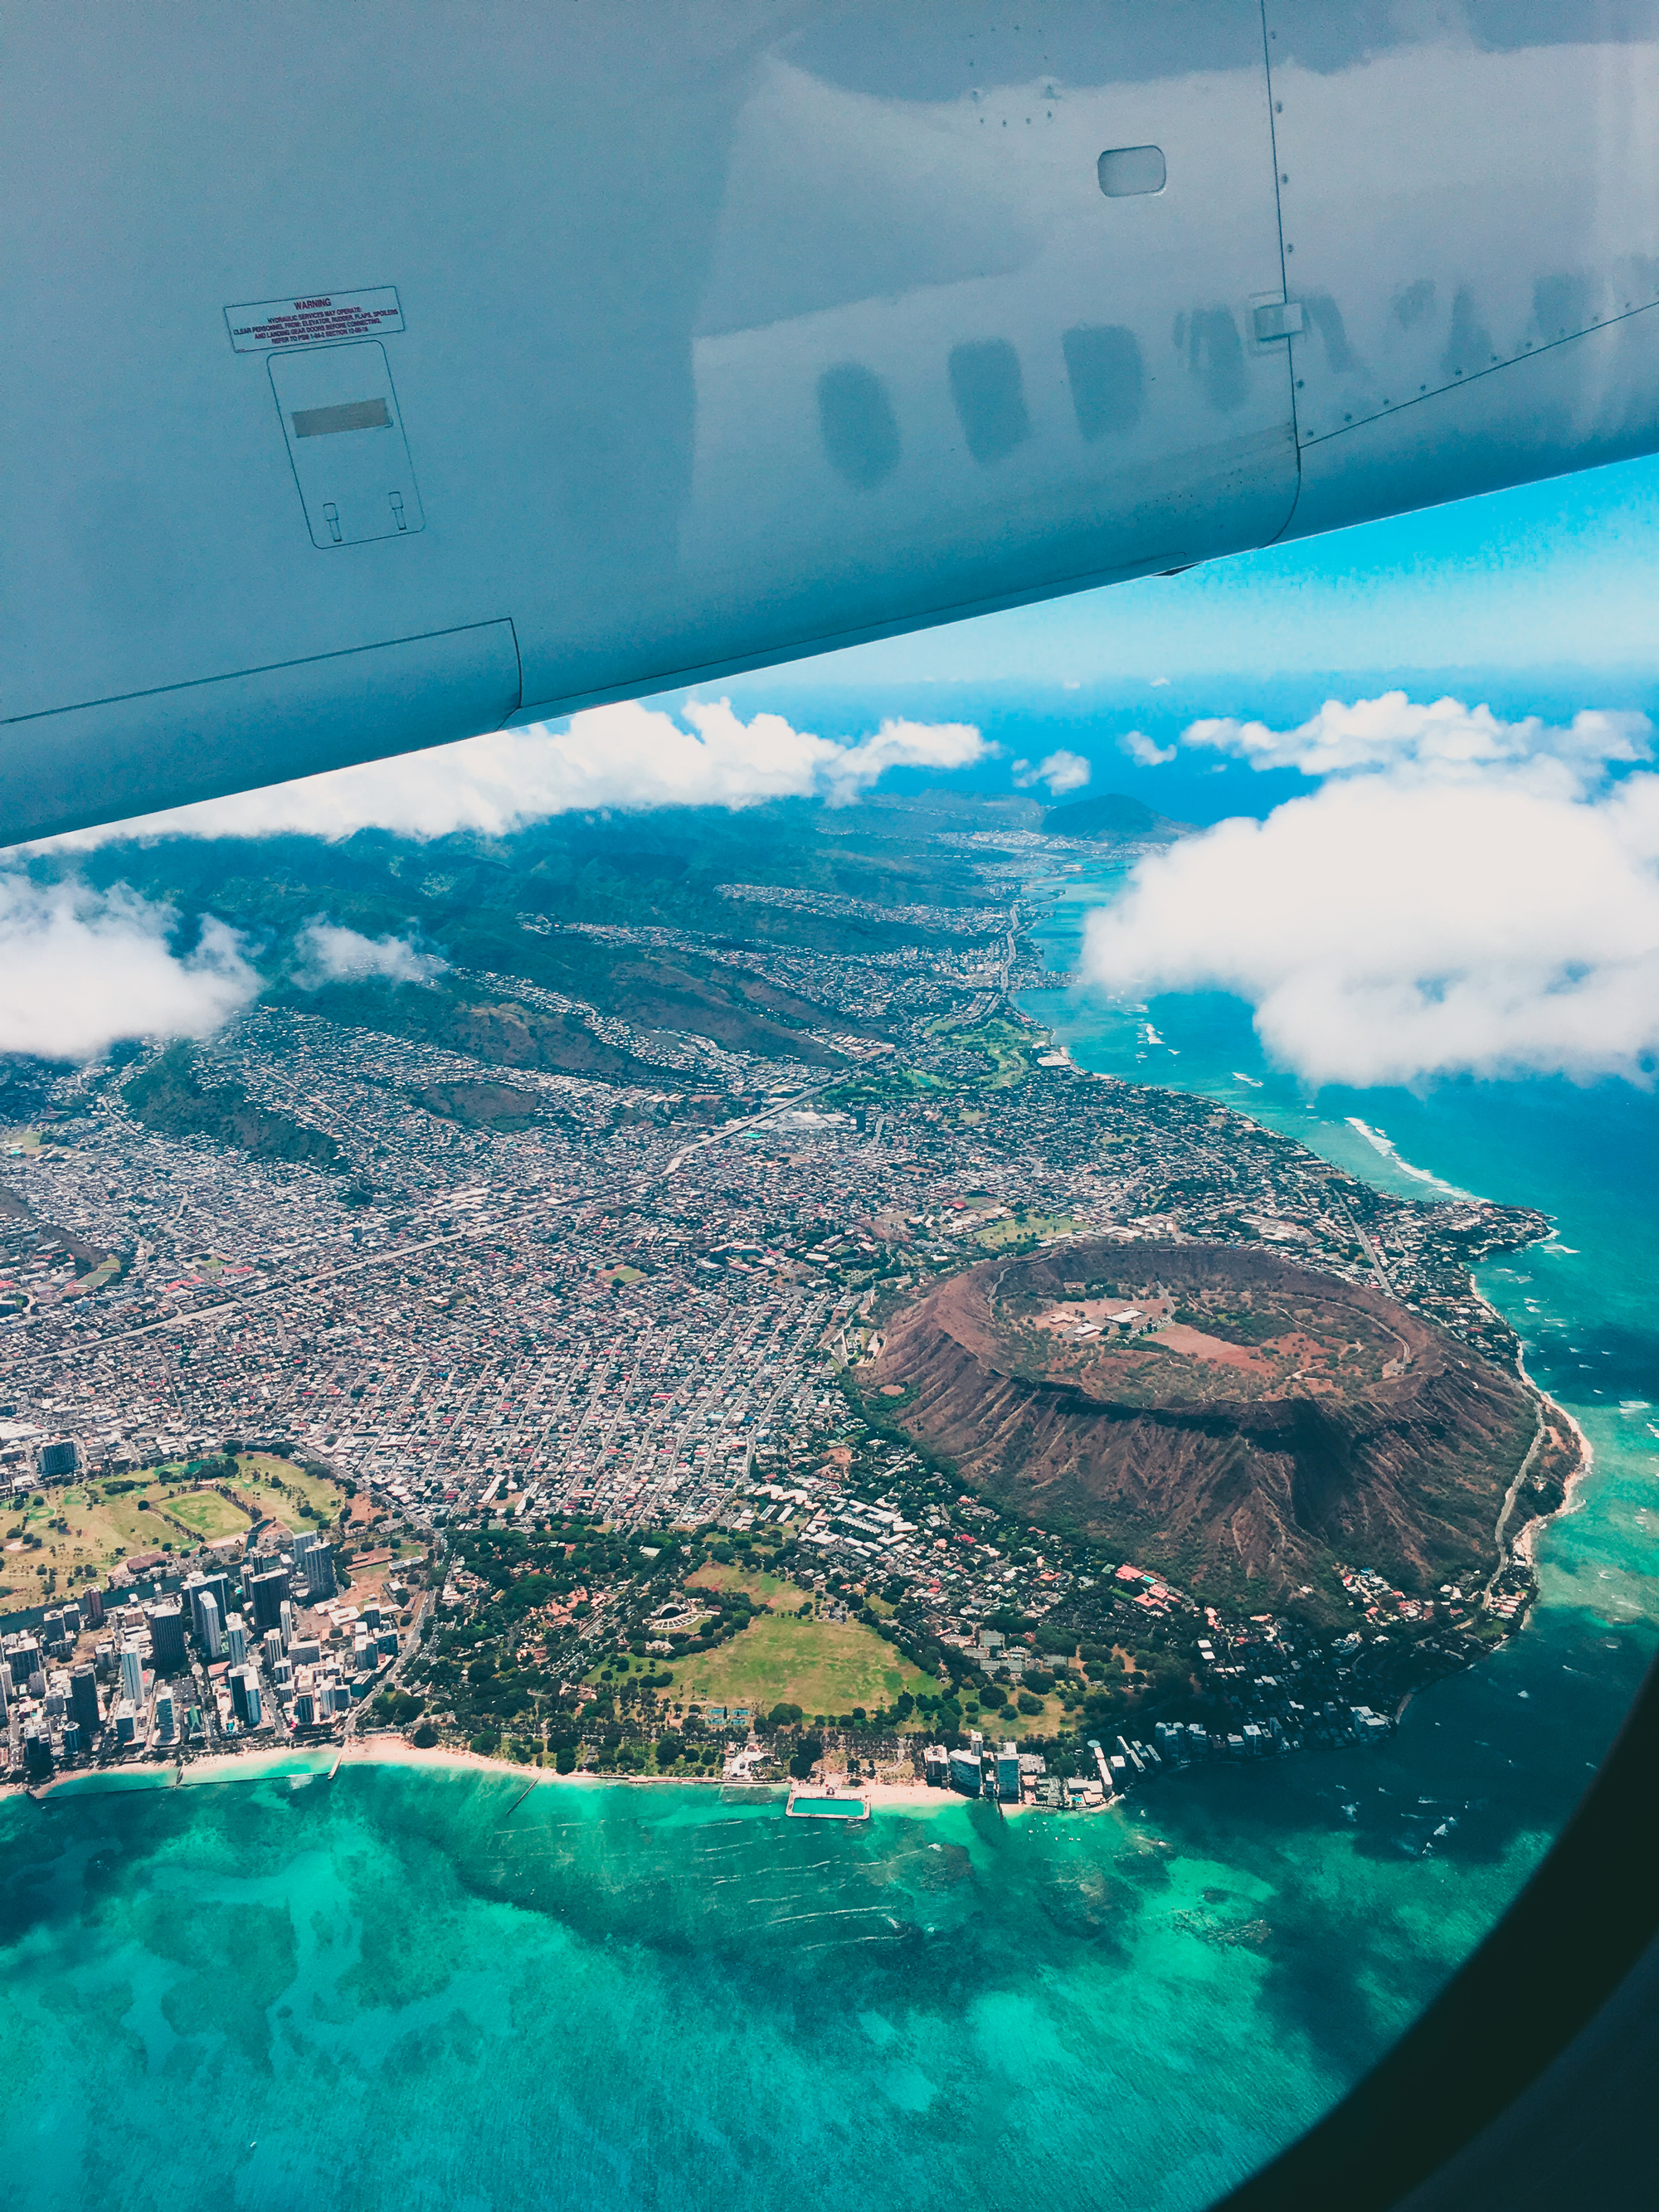 Flying over Waikiki and Diamond Head is quite the spectacle.